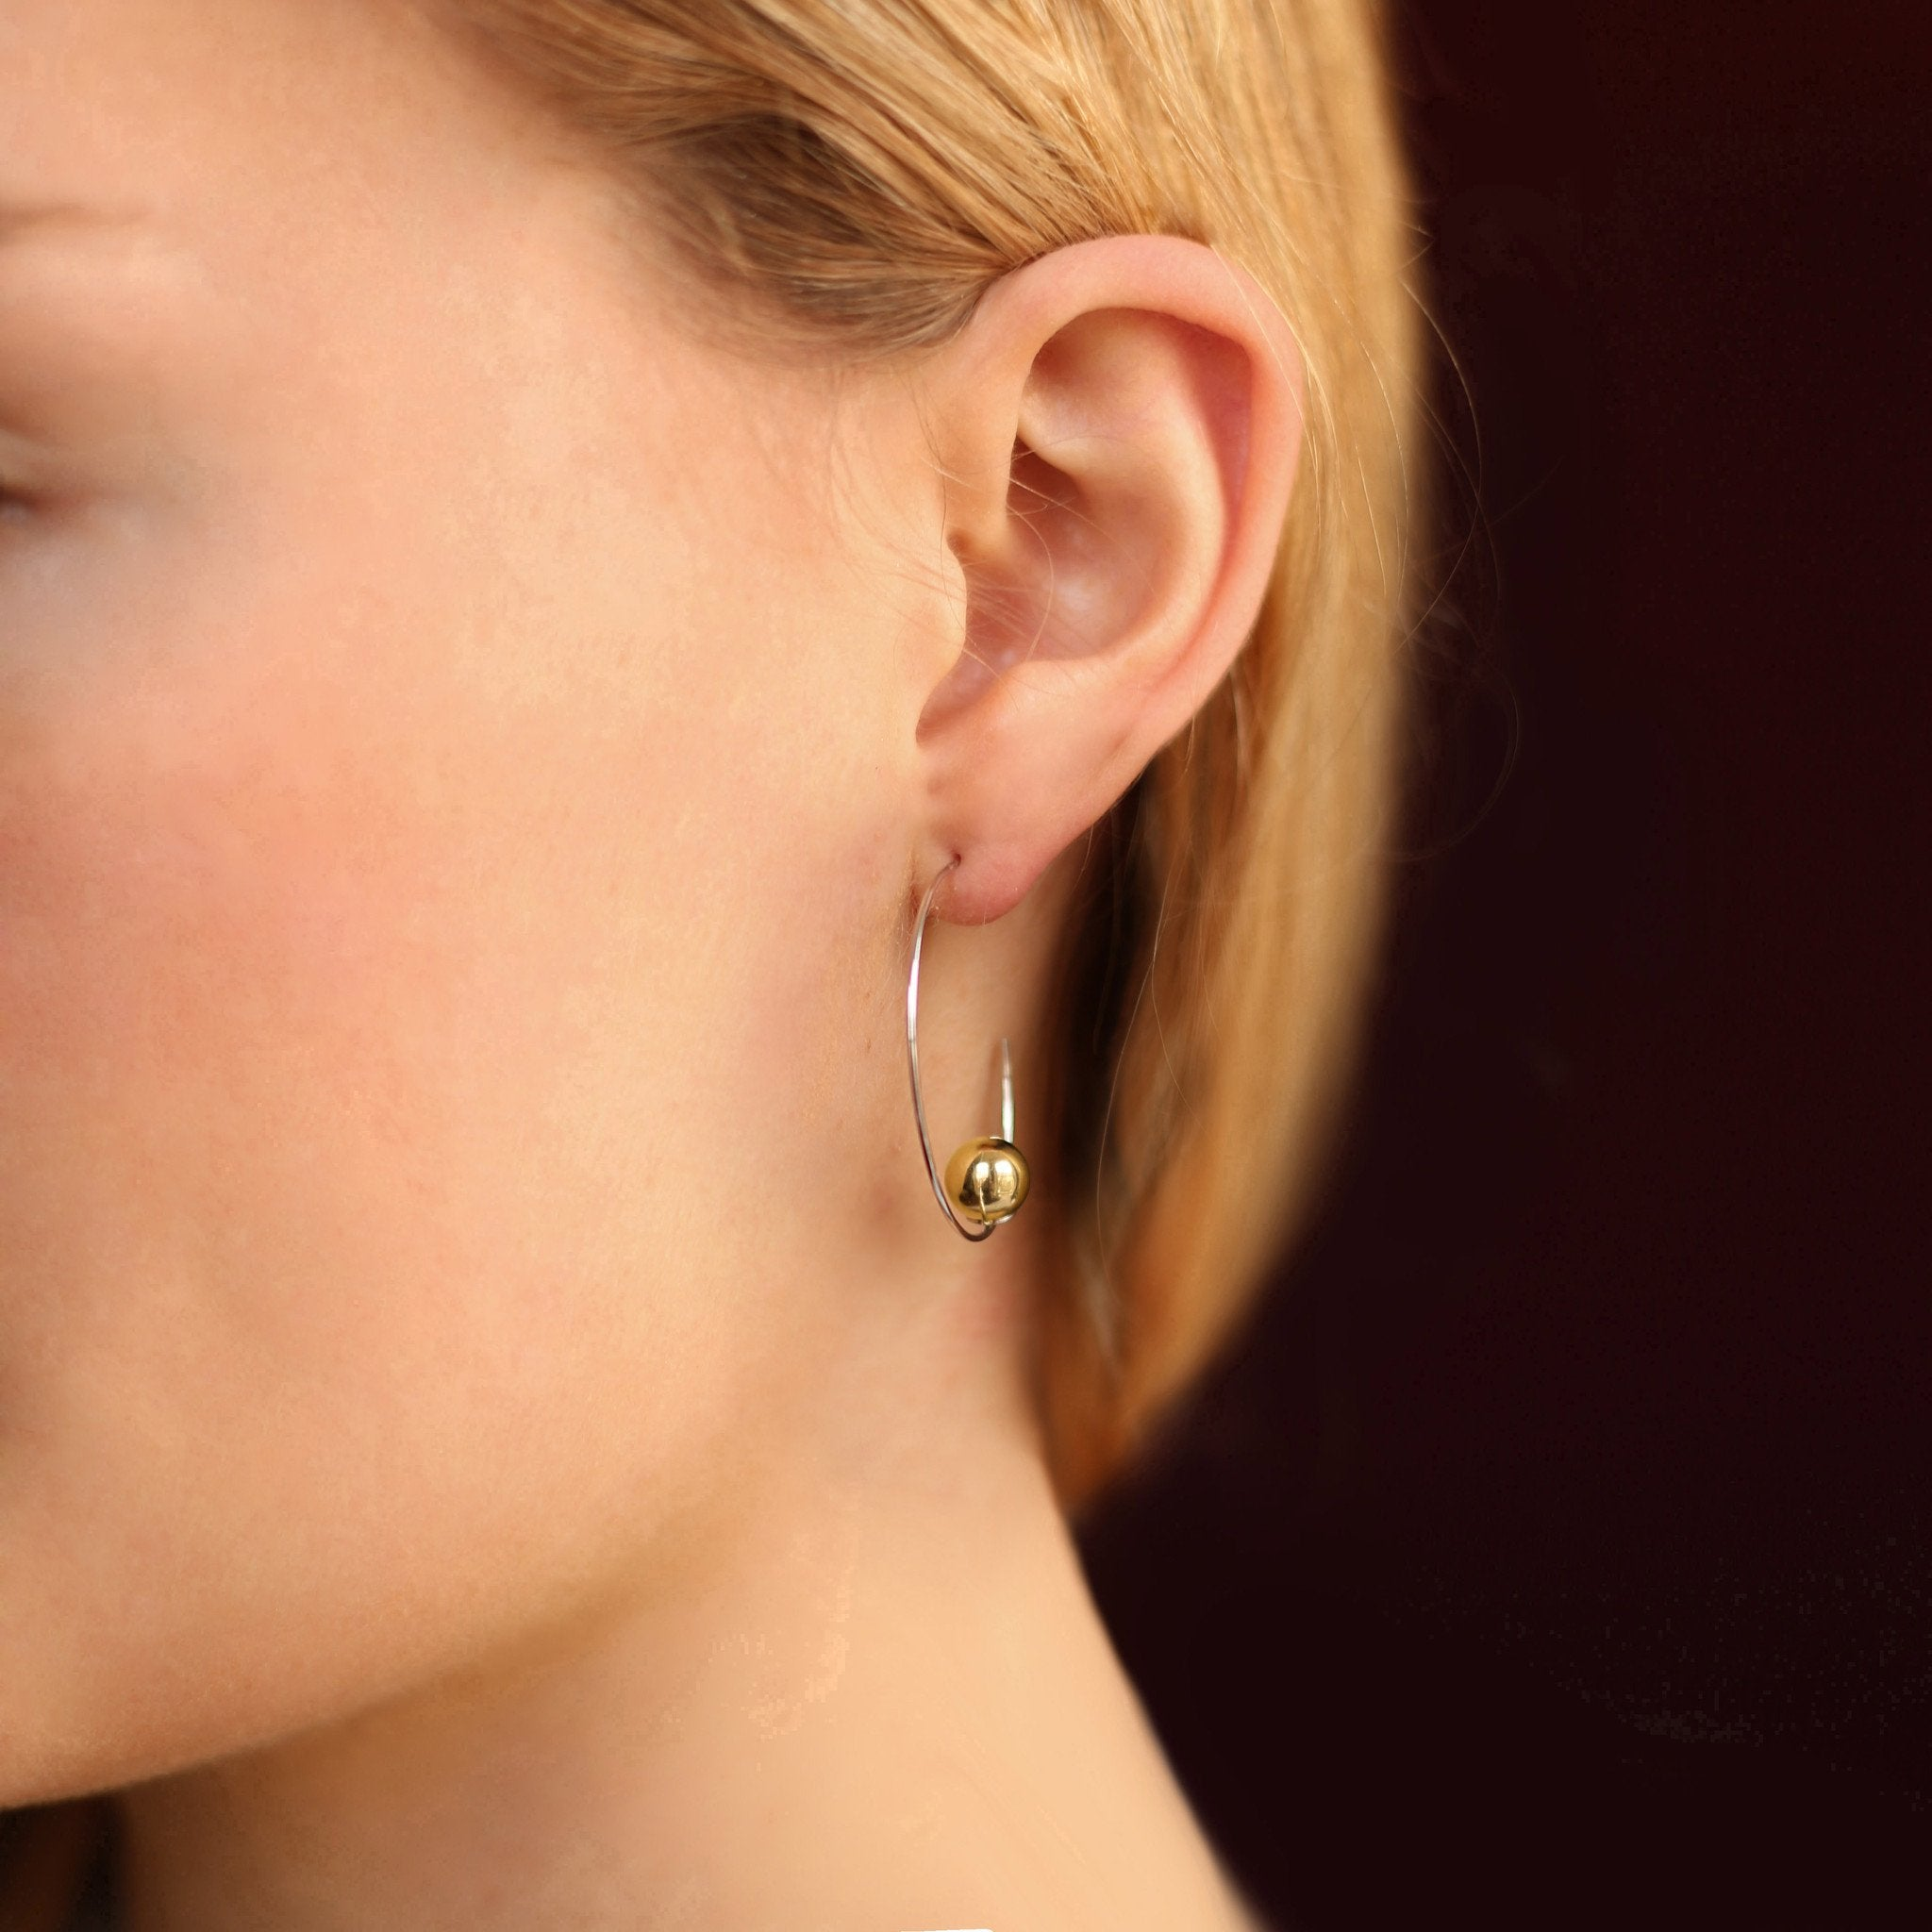 silver hoops, gold plated hoops, amazing hoops from the hoop station, georgiana scott jewellery